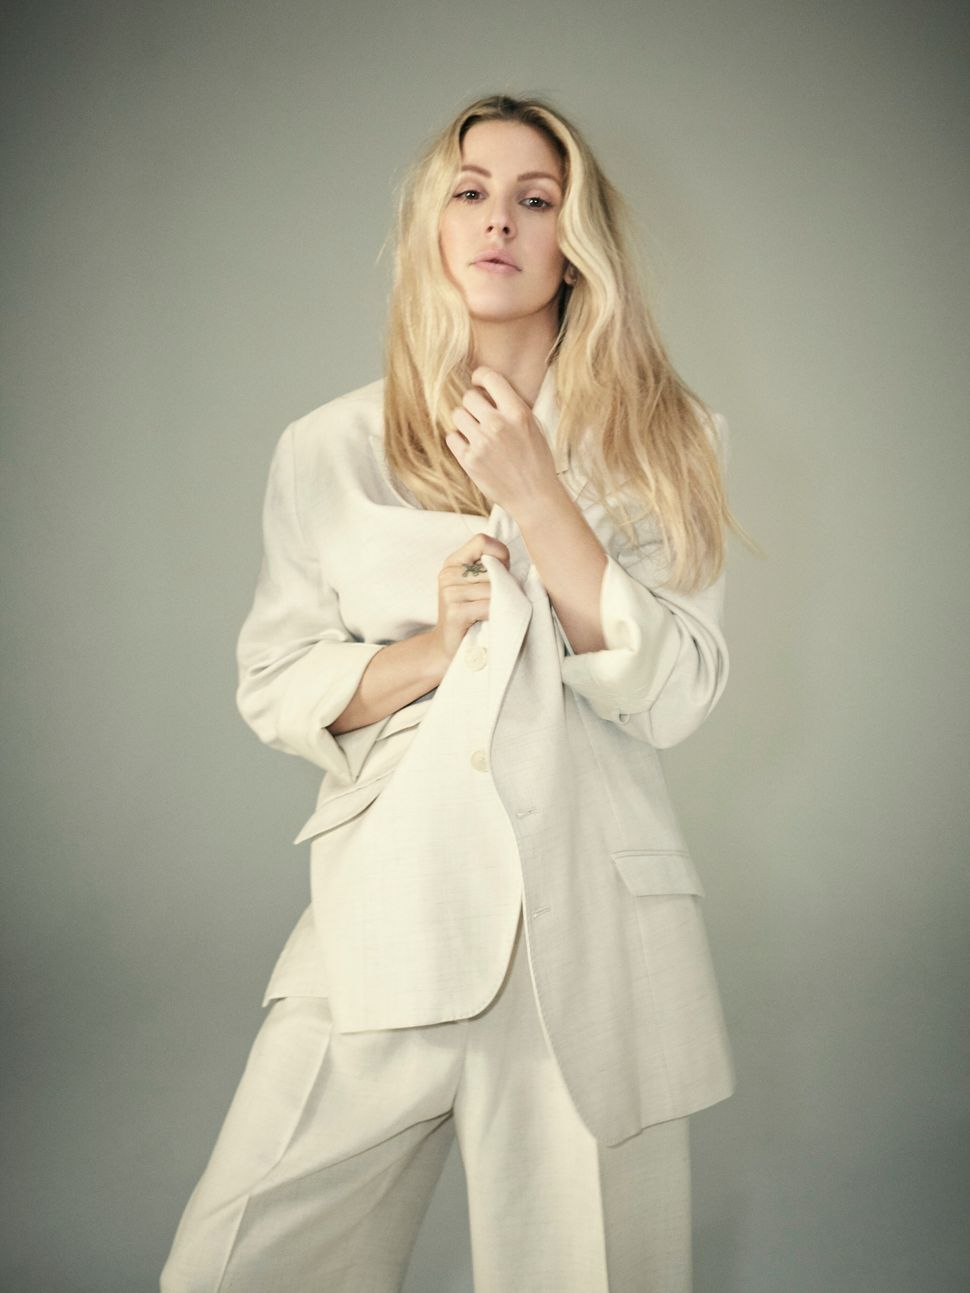 Goulding is engaged to Caspar Jopling and is currently in wedding-planning mode.